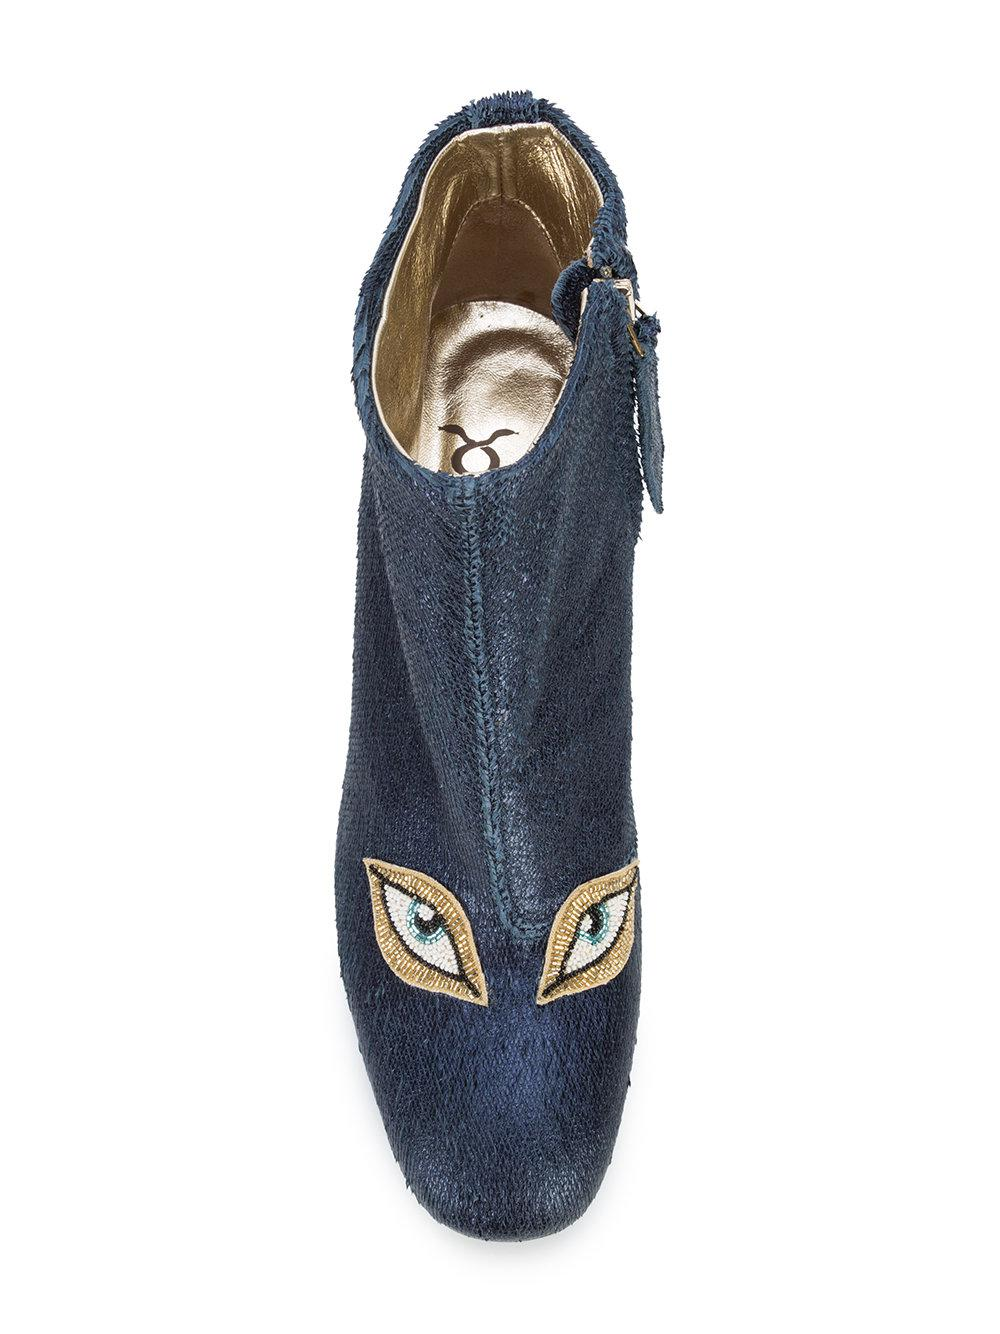 beaded eyes boots - Blue Figue vE0czsnW1